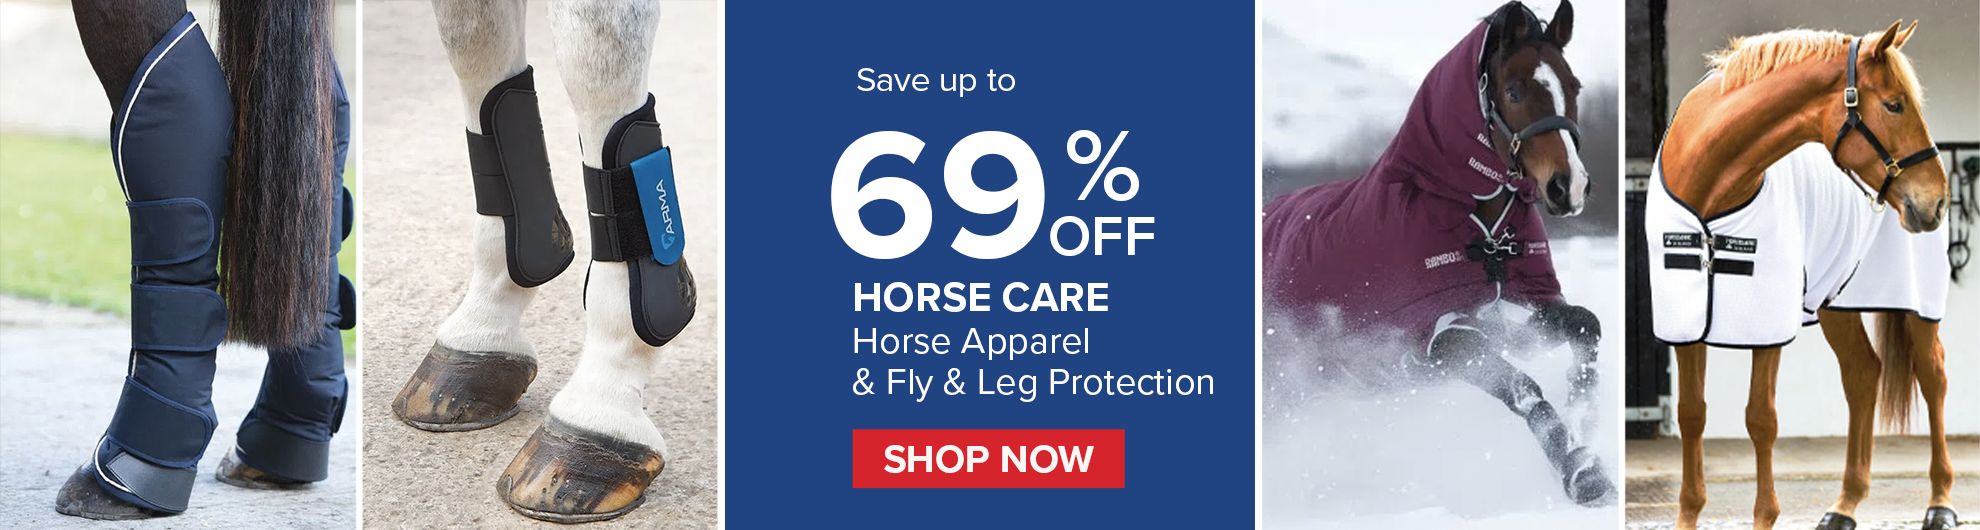 Shop or Horse Care Products on Bit of Britain